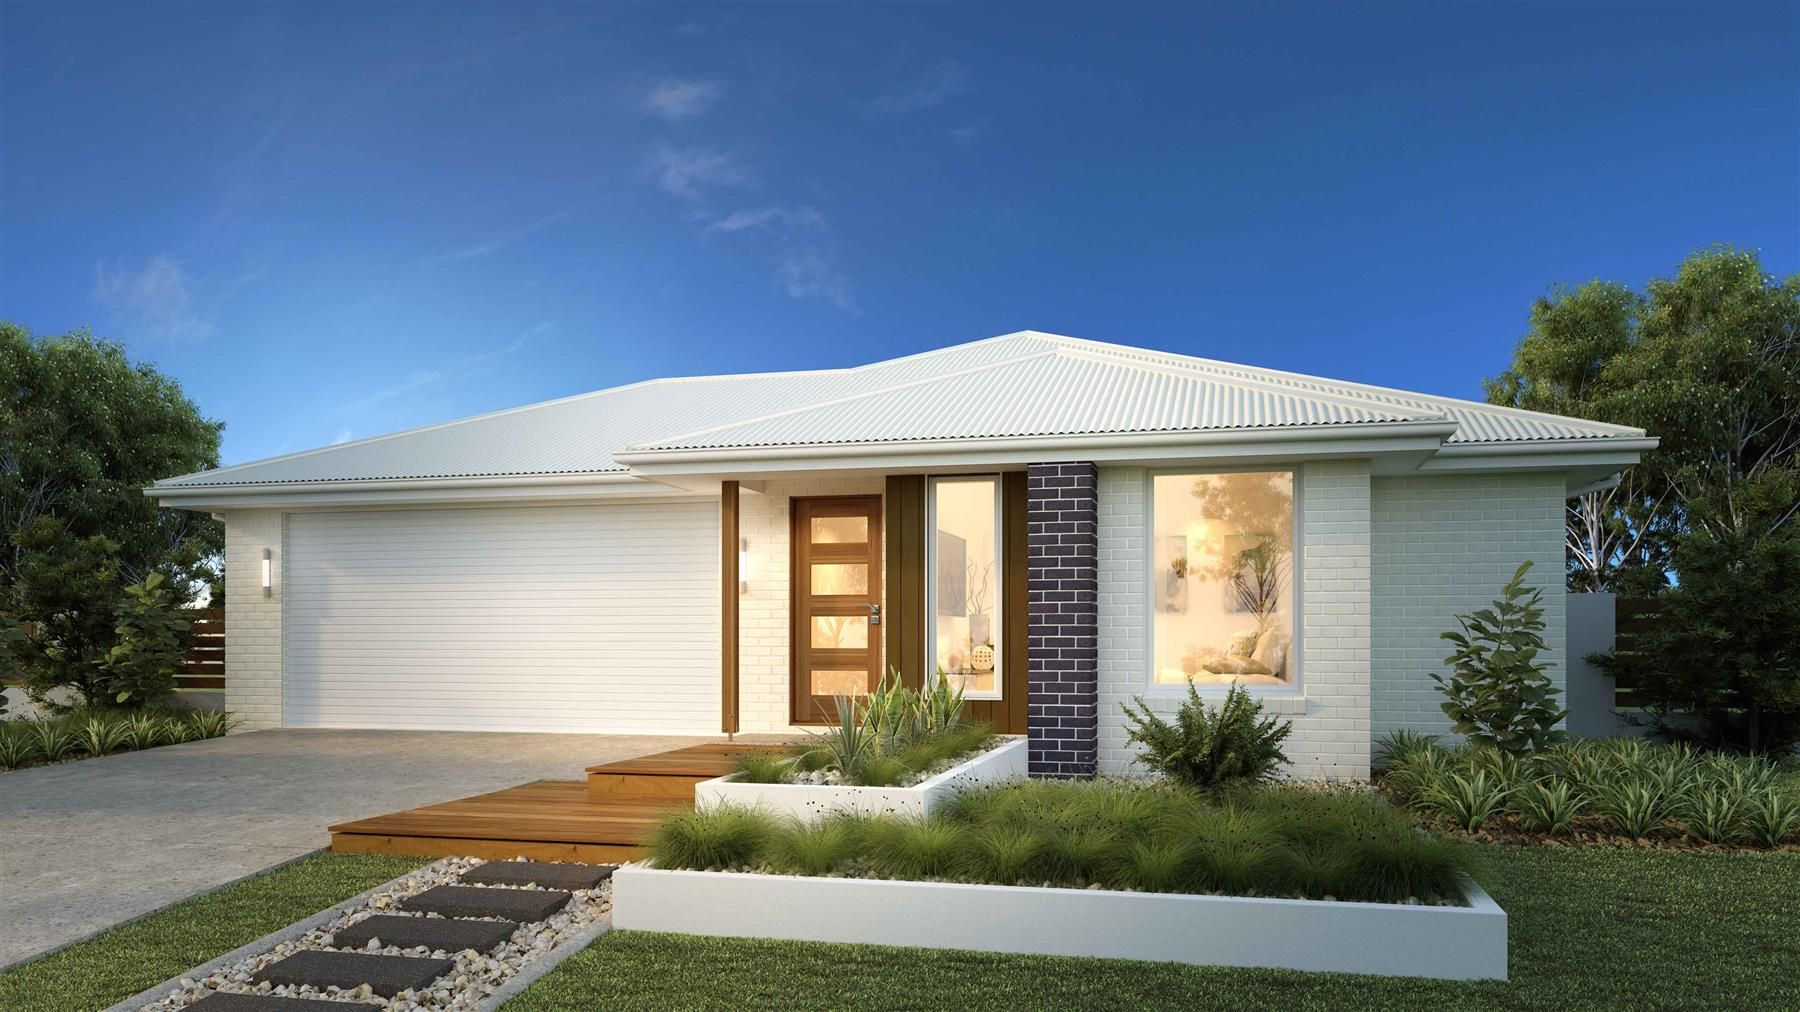 Lot 2551 FLOURISH DRIVE, Mount Duneed VIC 3217, Image 0